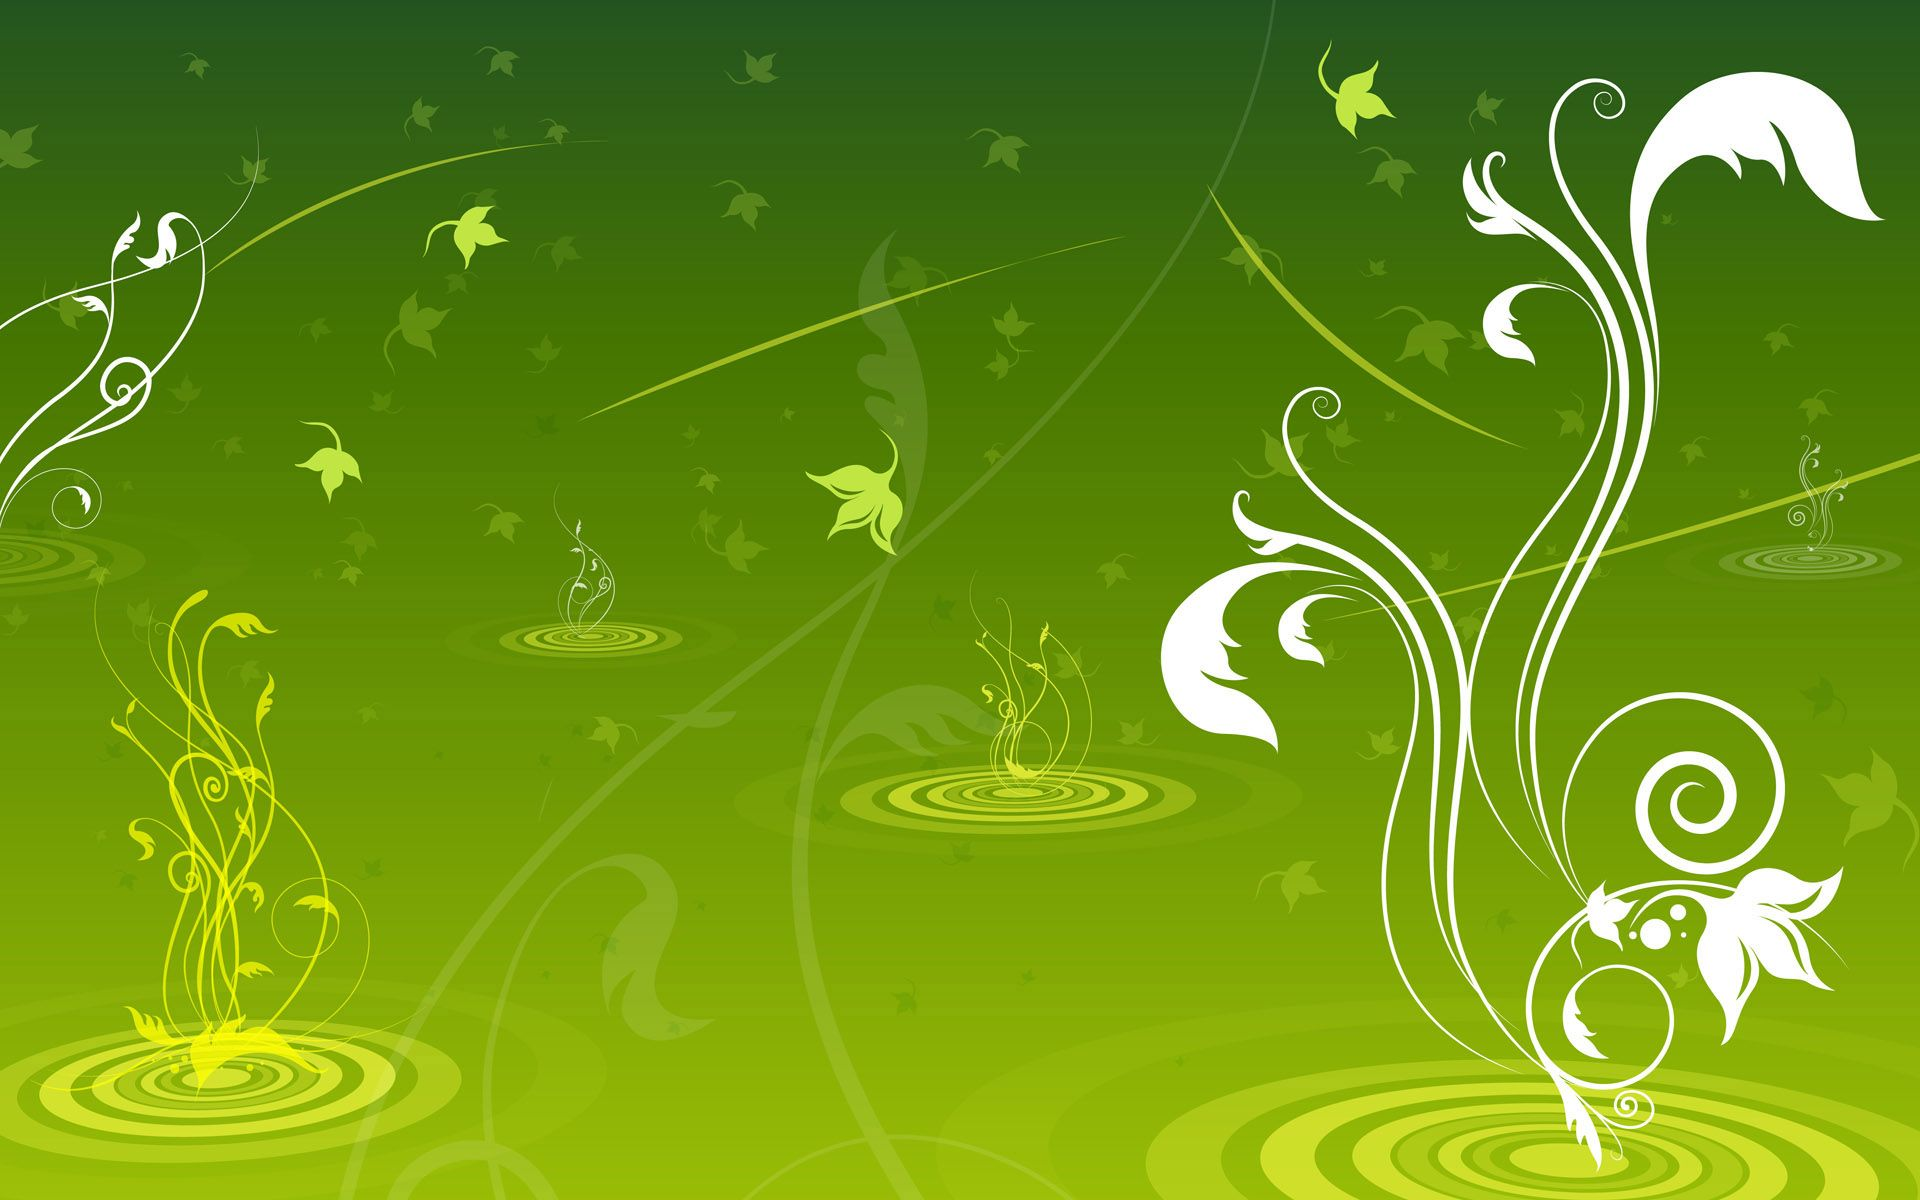 Hd wallpaper green - Backgrounds Image Hd Quality Group 1920 1080 Green Hd Backgrounds 49 Wallpapers